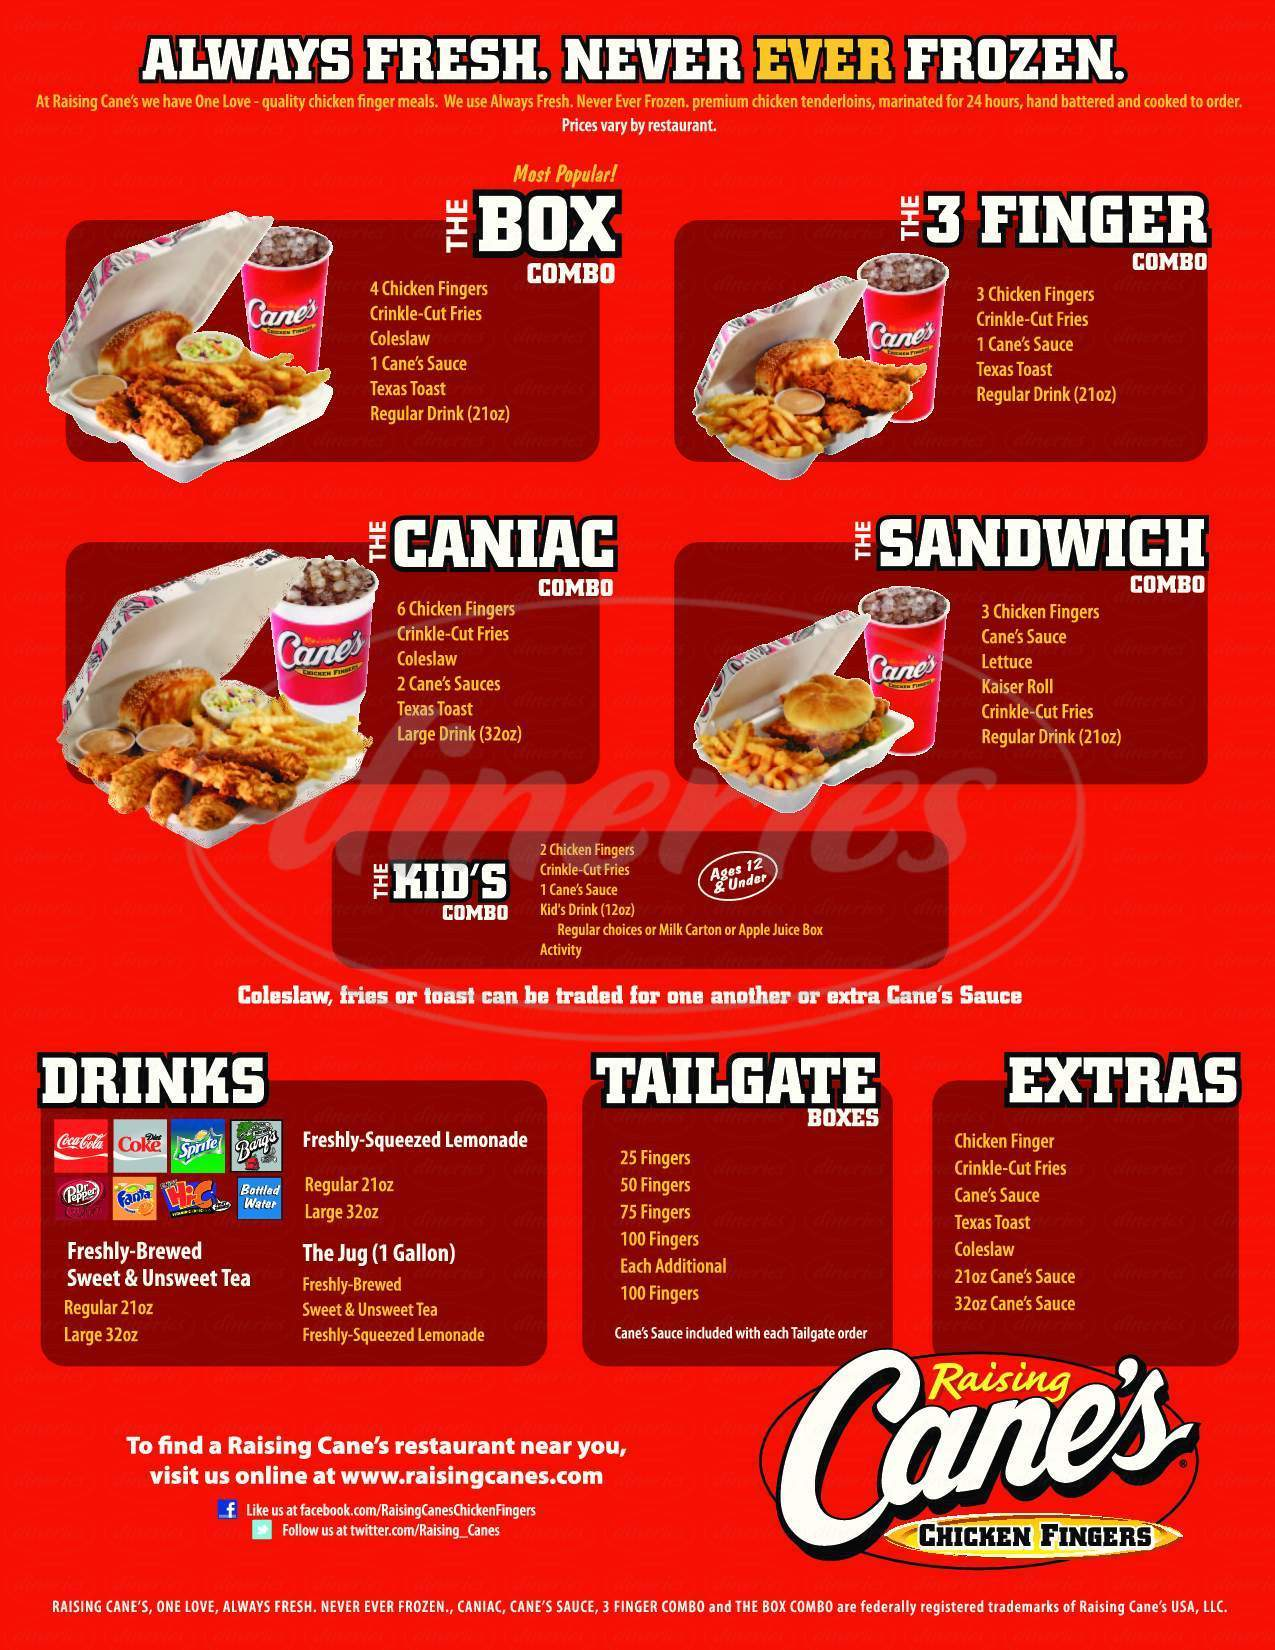 menu for Raising Cane's Chicken Fingers